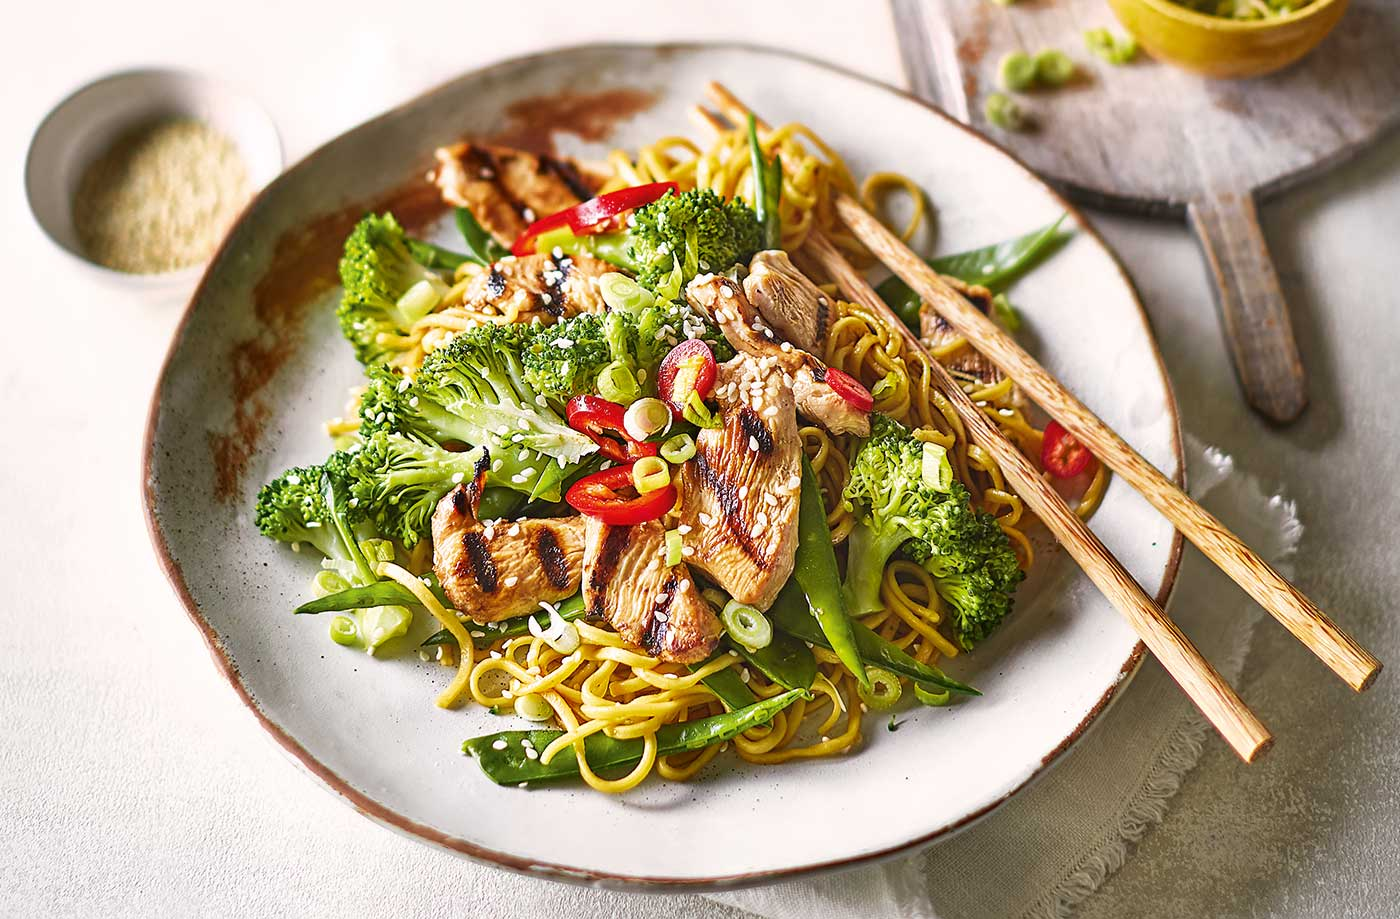 Teriyaki chicken noodles recipe